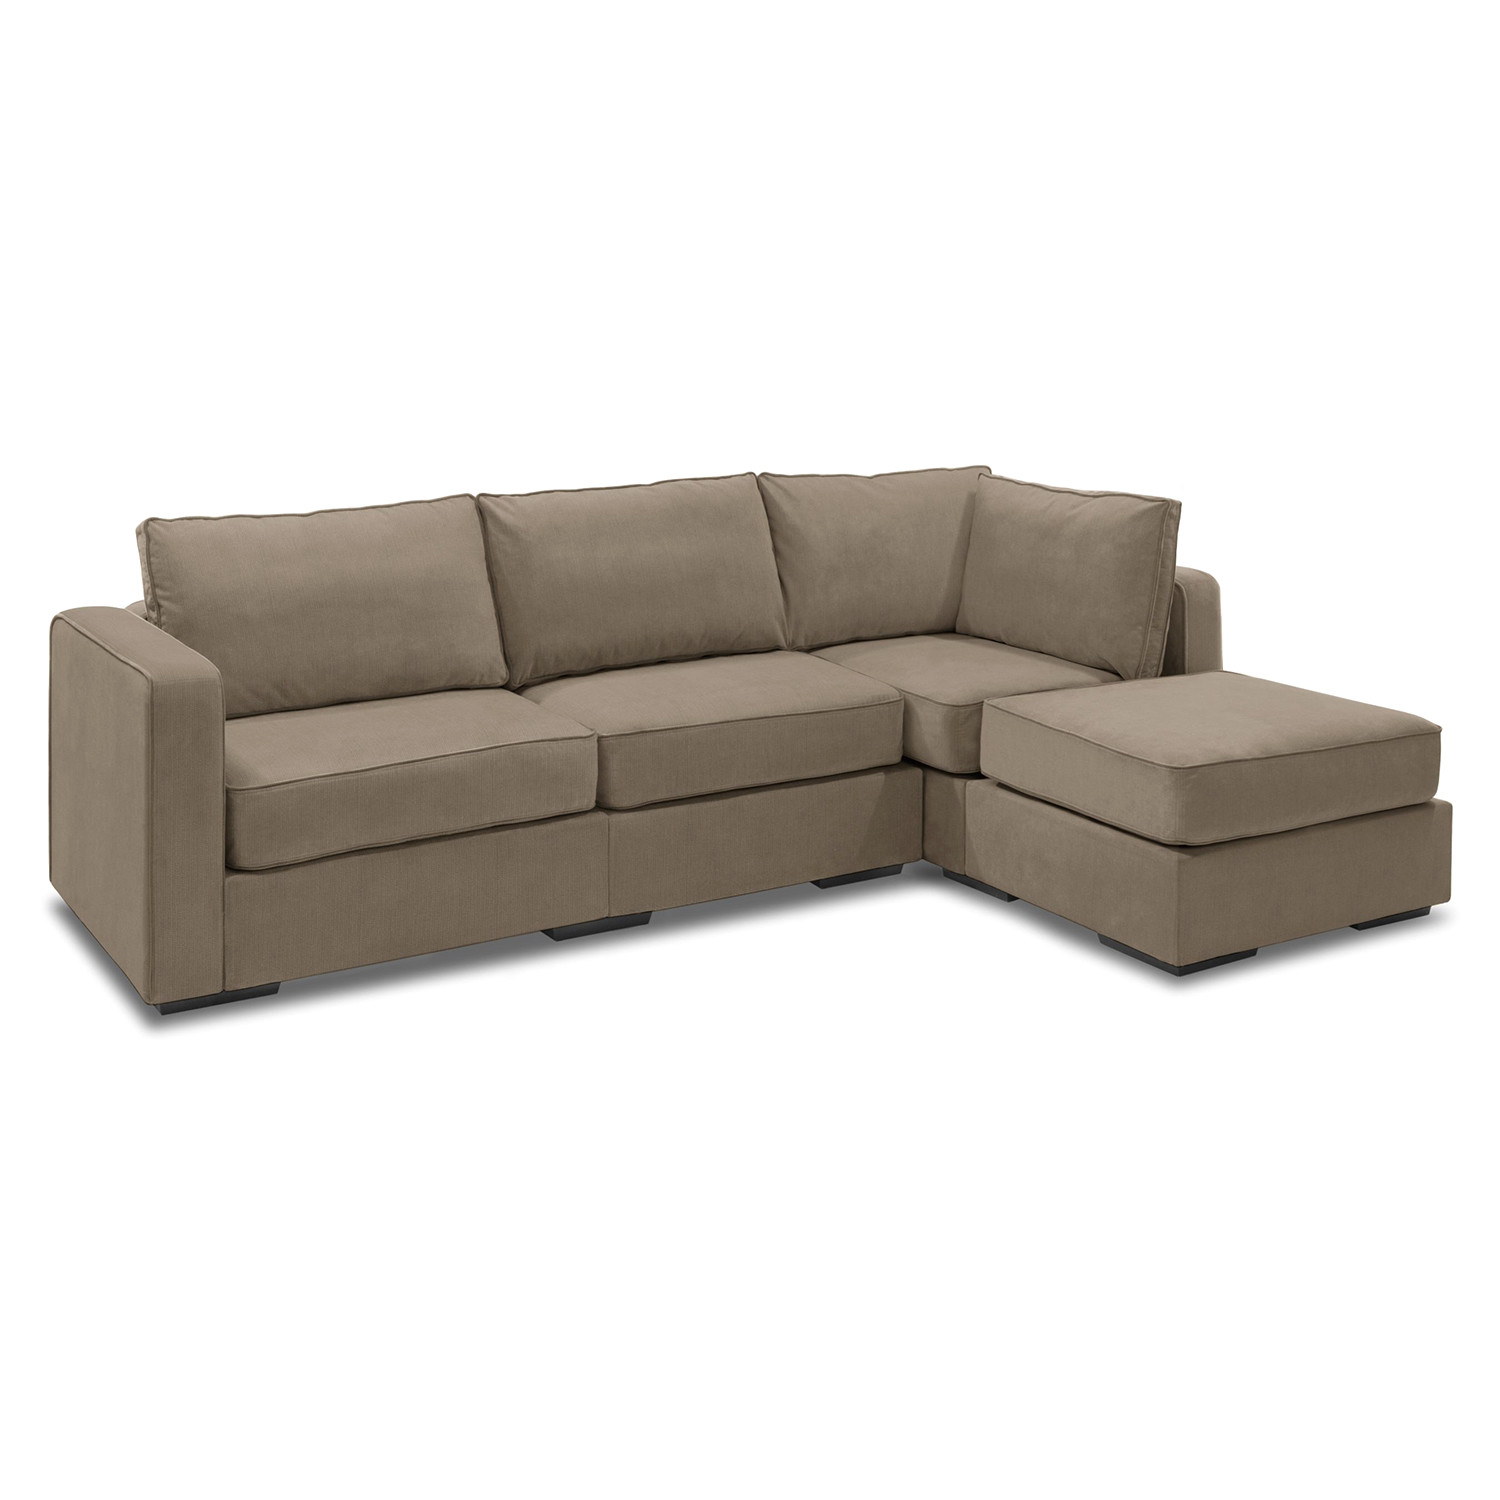 Lovesac Sofa For Sale: 5 Series Sactionals // Chaise Sectional (Taupe)